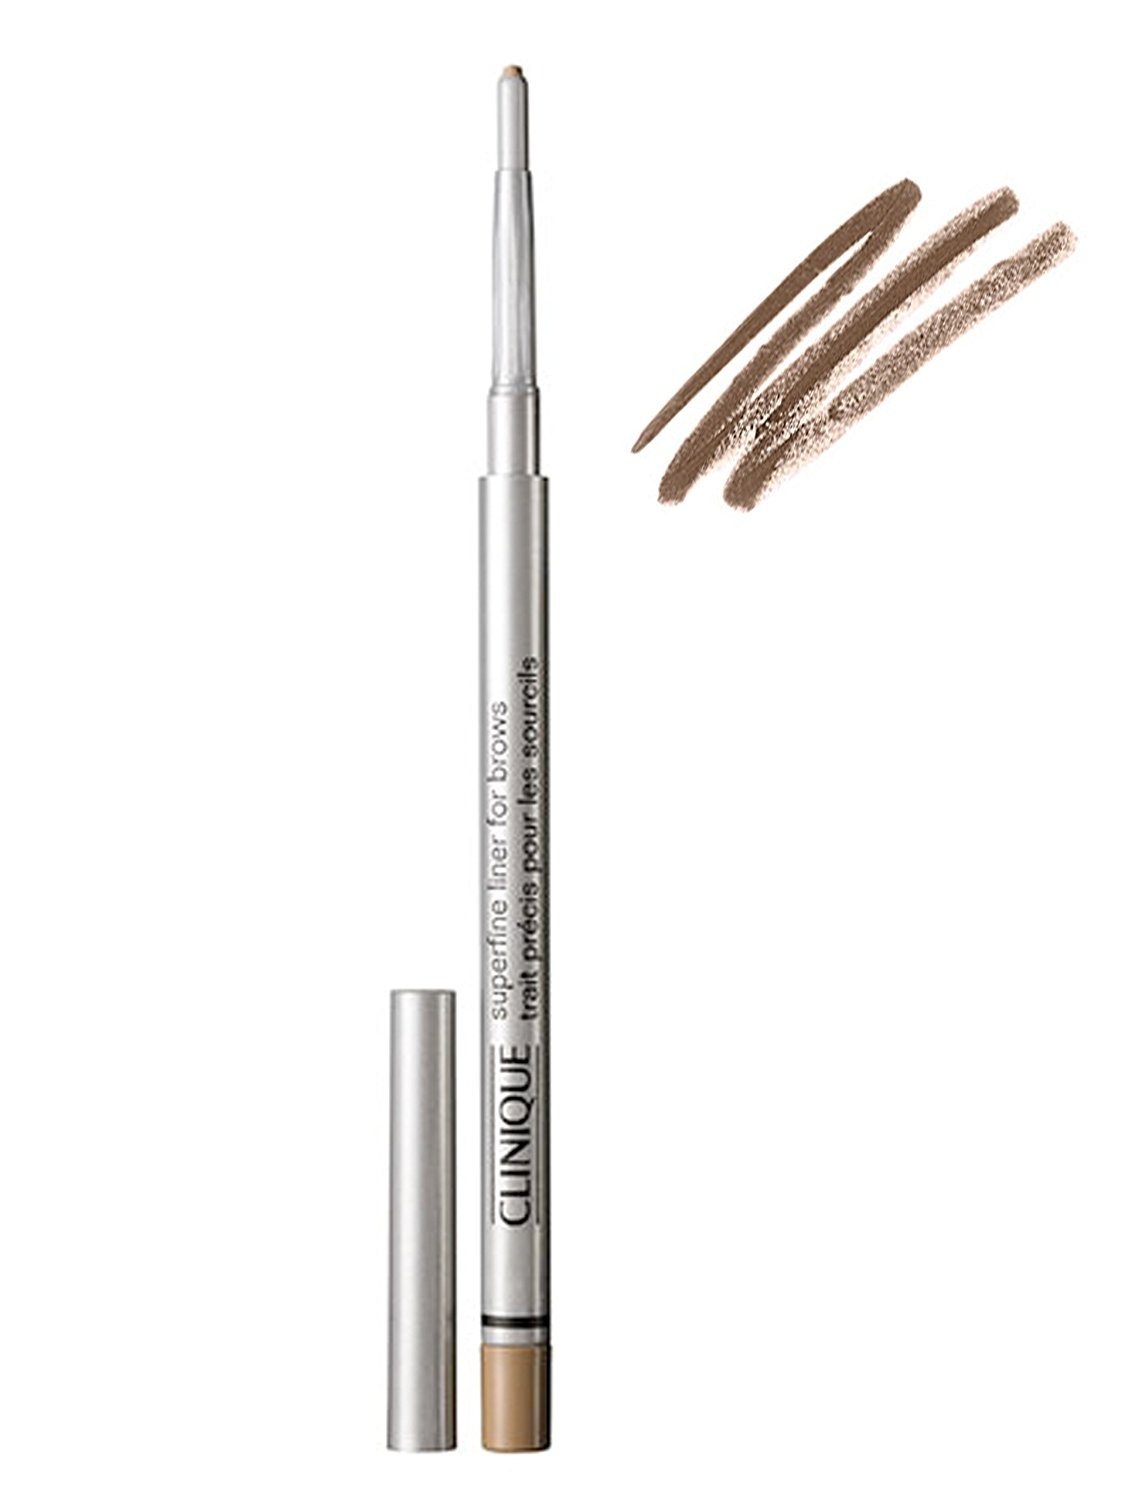 Clinique Superfine Liner For Brows Eyebrow Pencil 12g 02 Deep